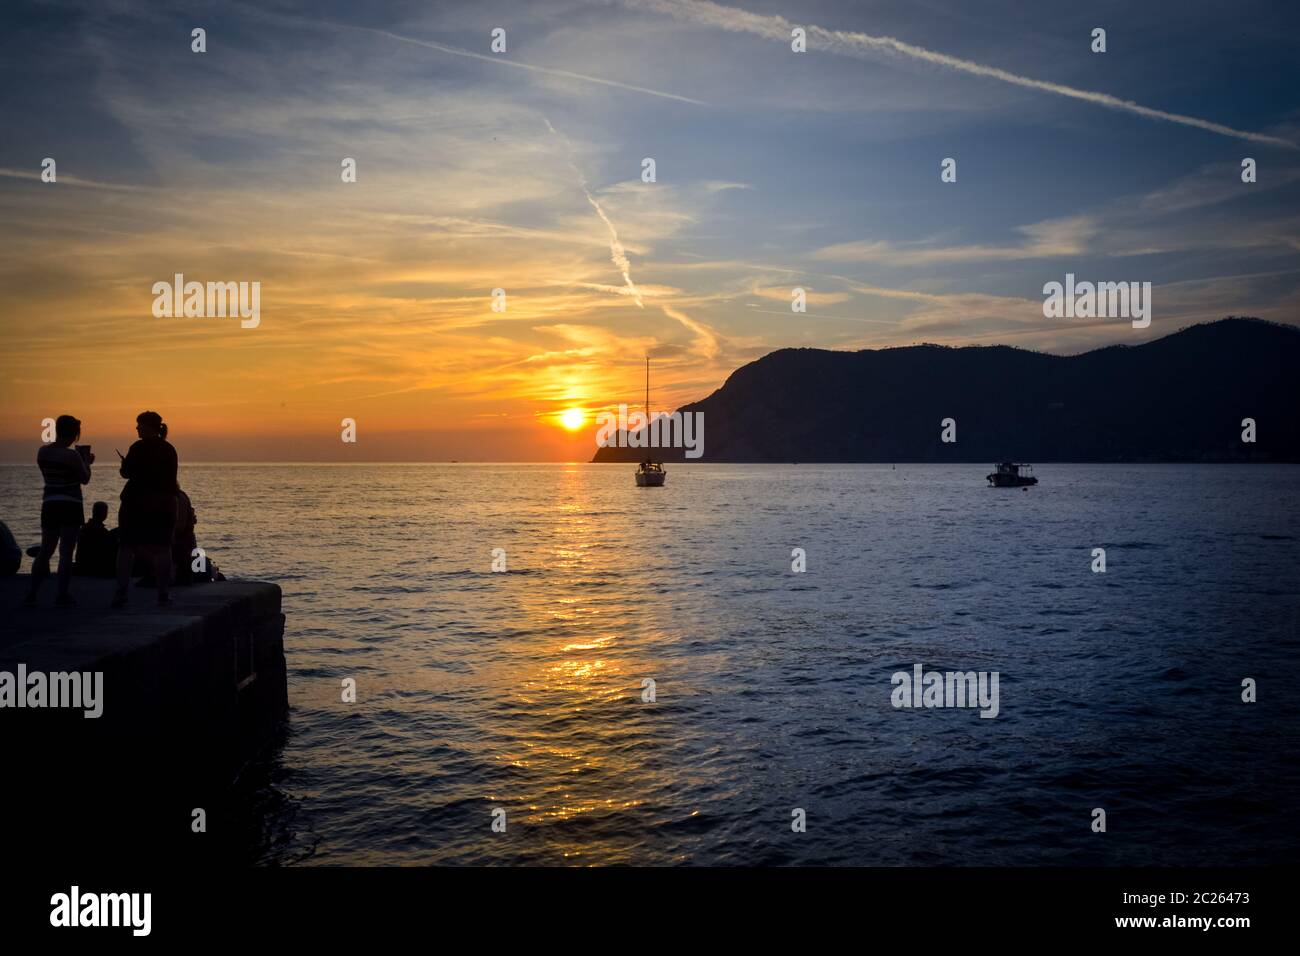 Two boats in the small harbor of Vernazza, Italy, as the sun sets on the Cinque Terre, on the Ligurian coast of the Italian Riviera Stock Photo